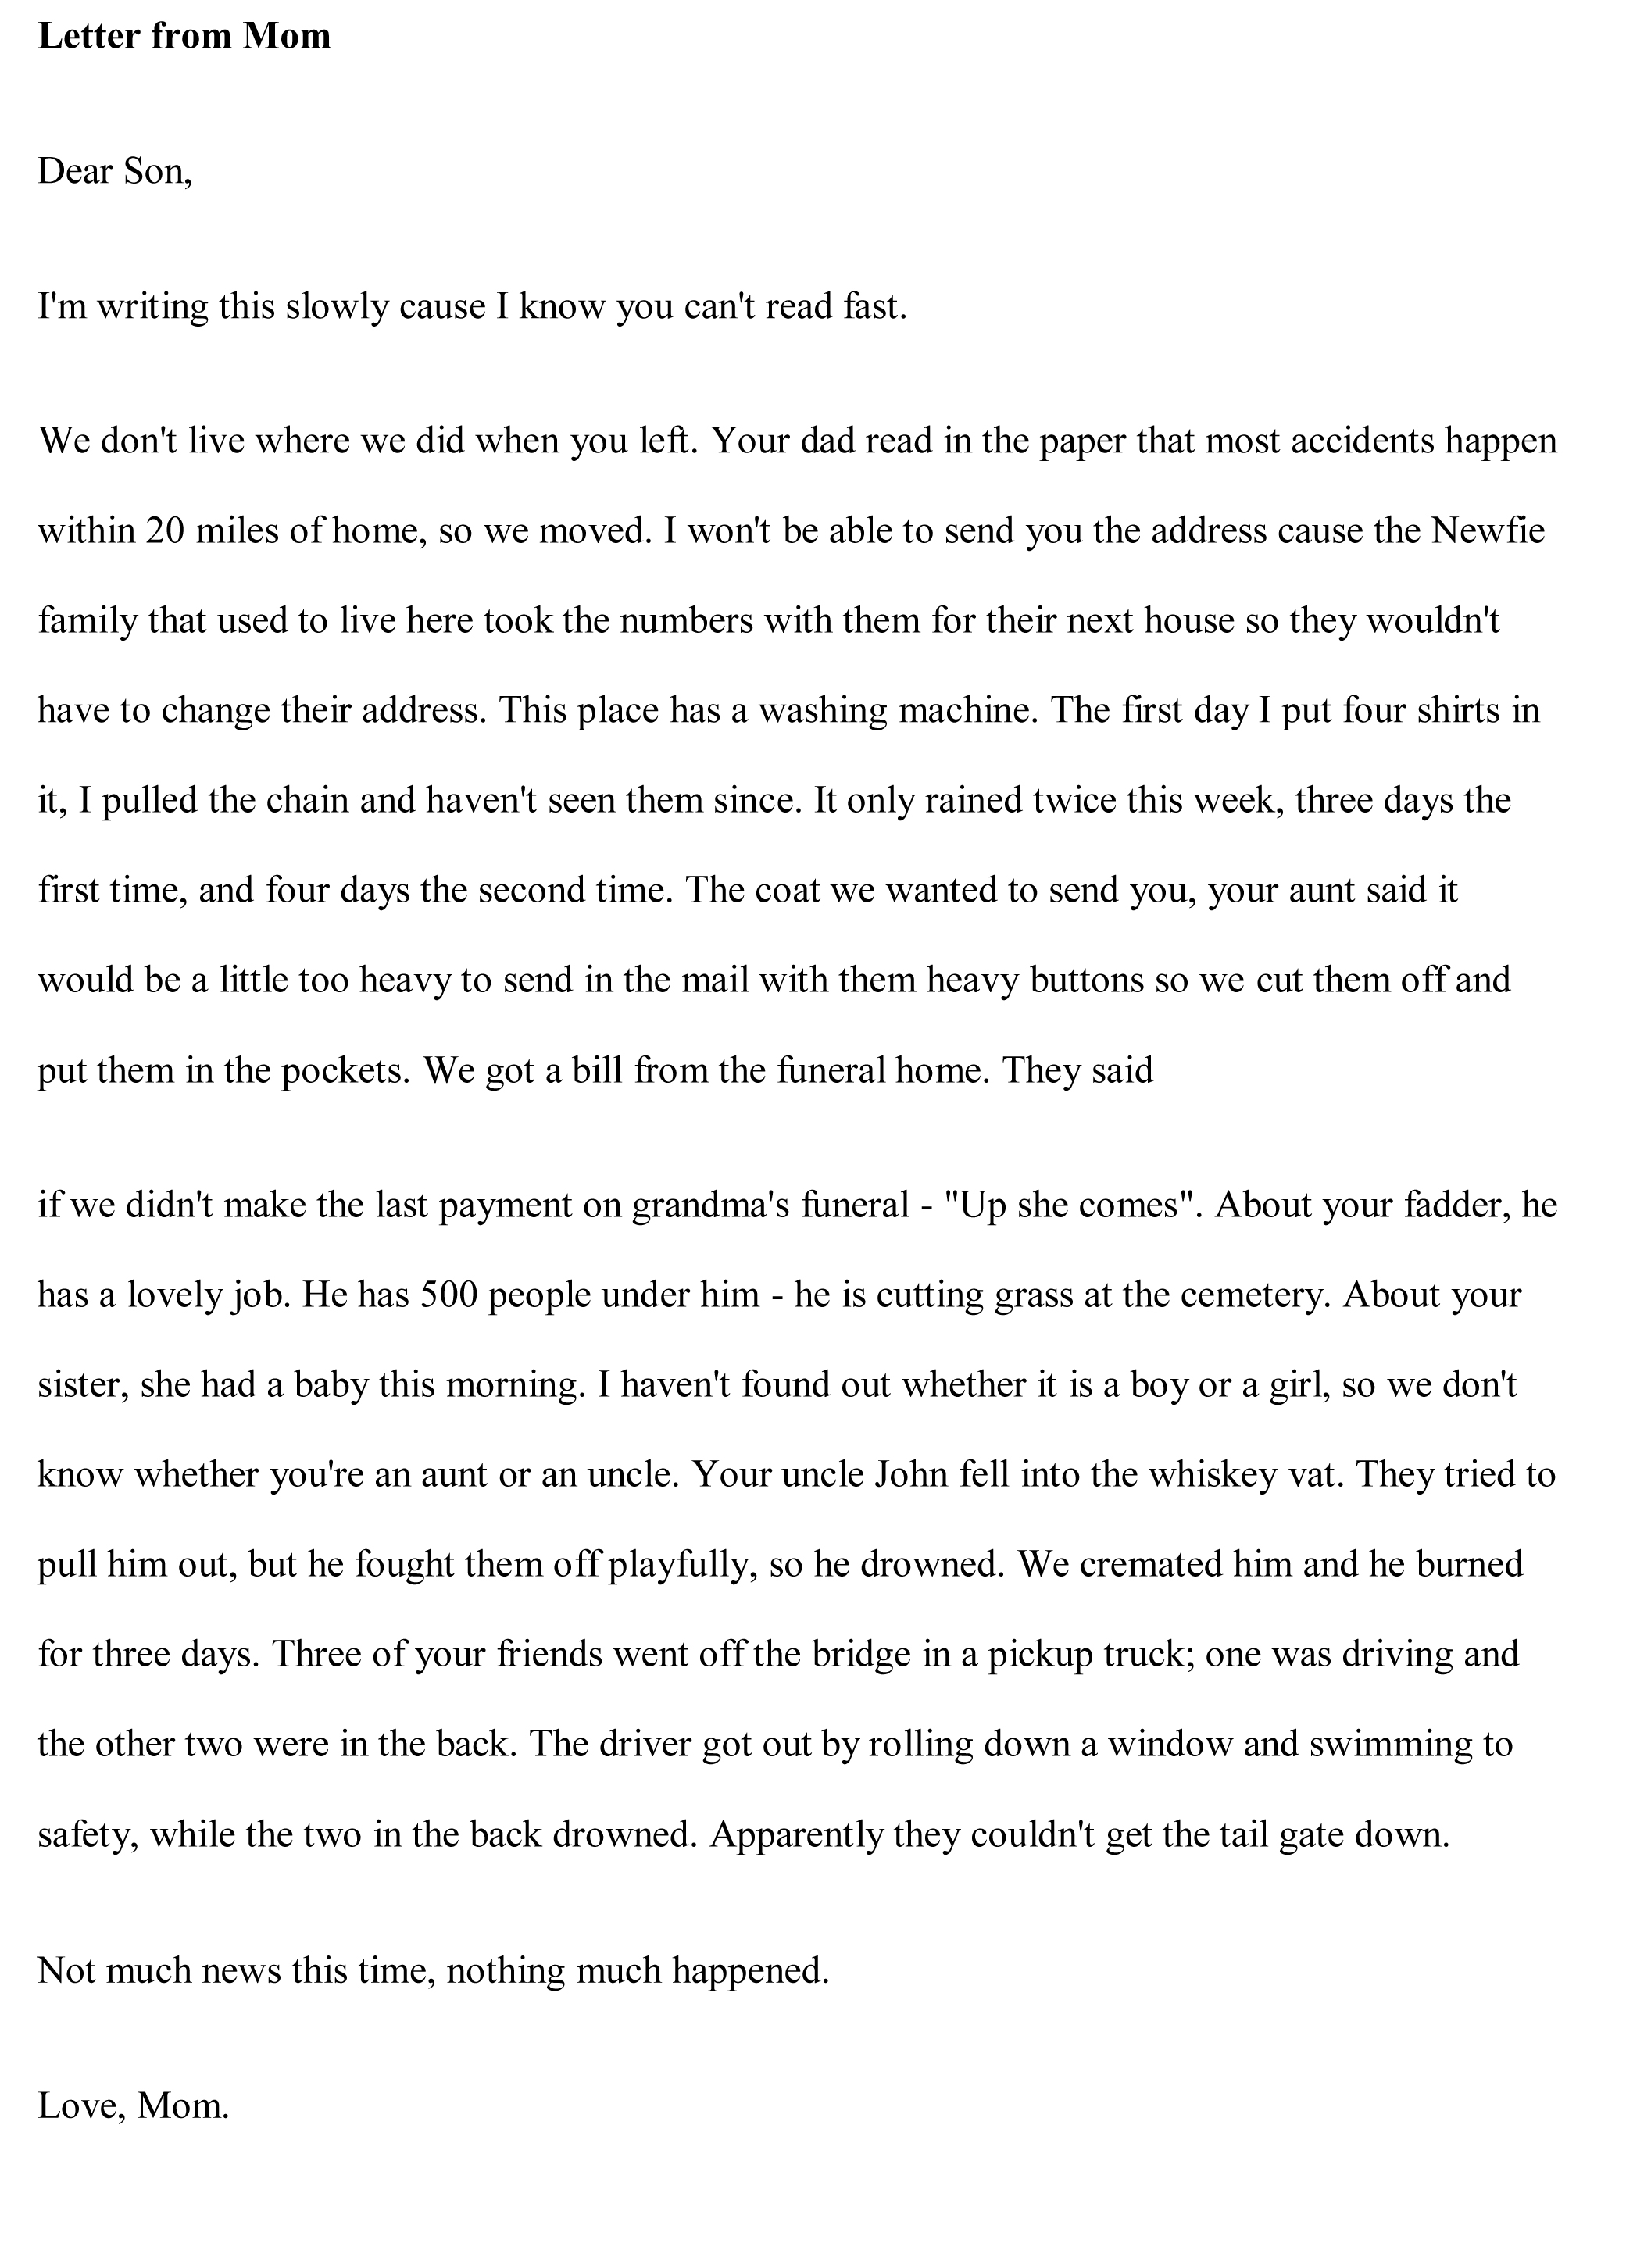 002 Informative Essay Definition Example Funny Free Outstanding Full